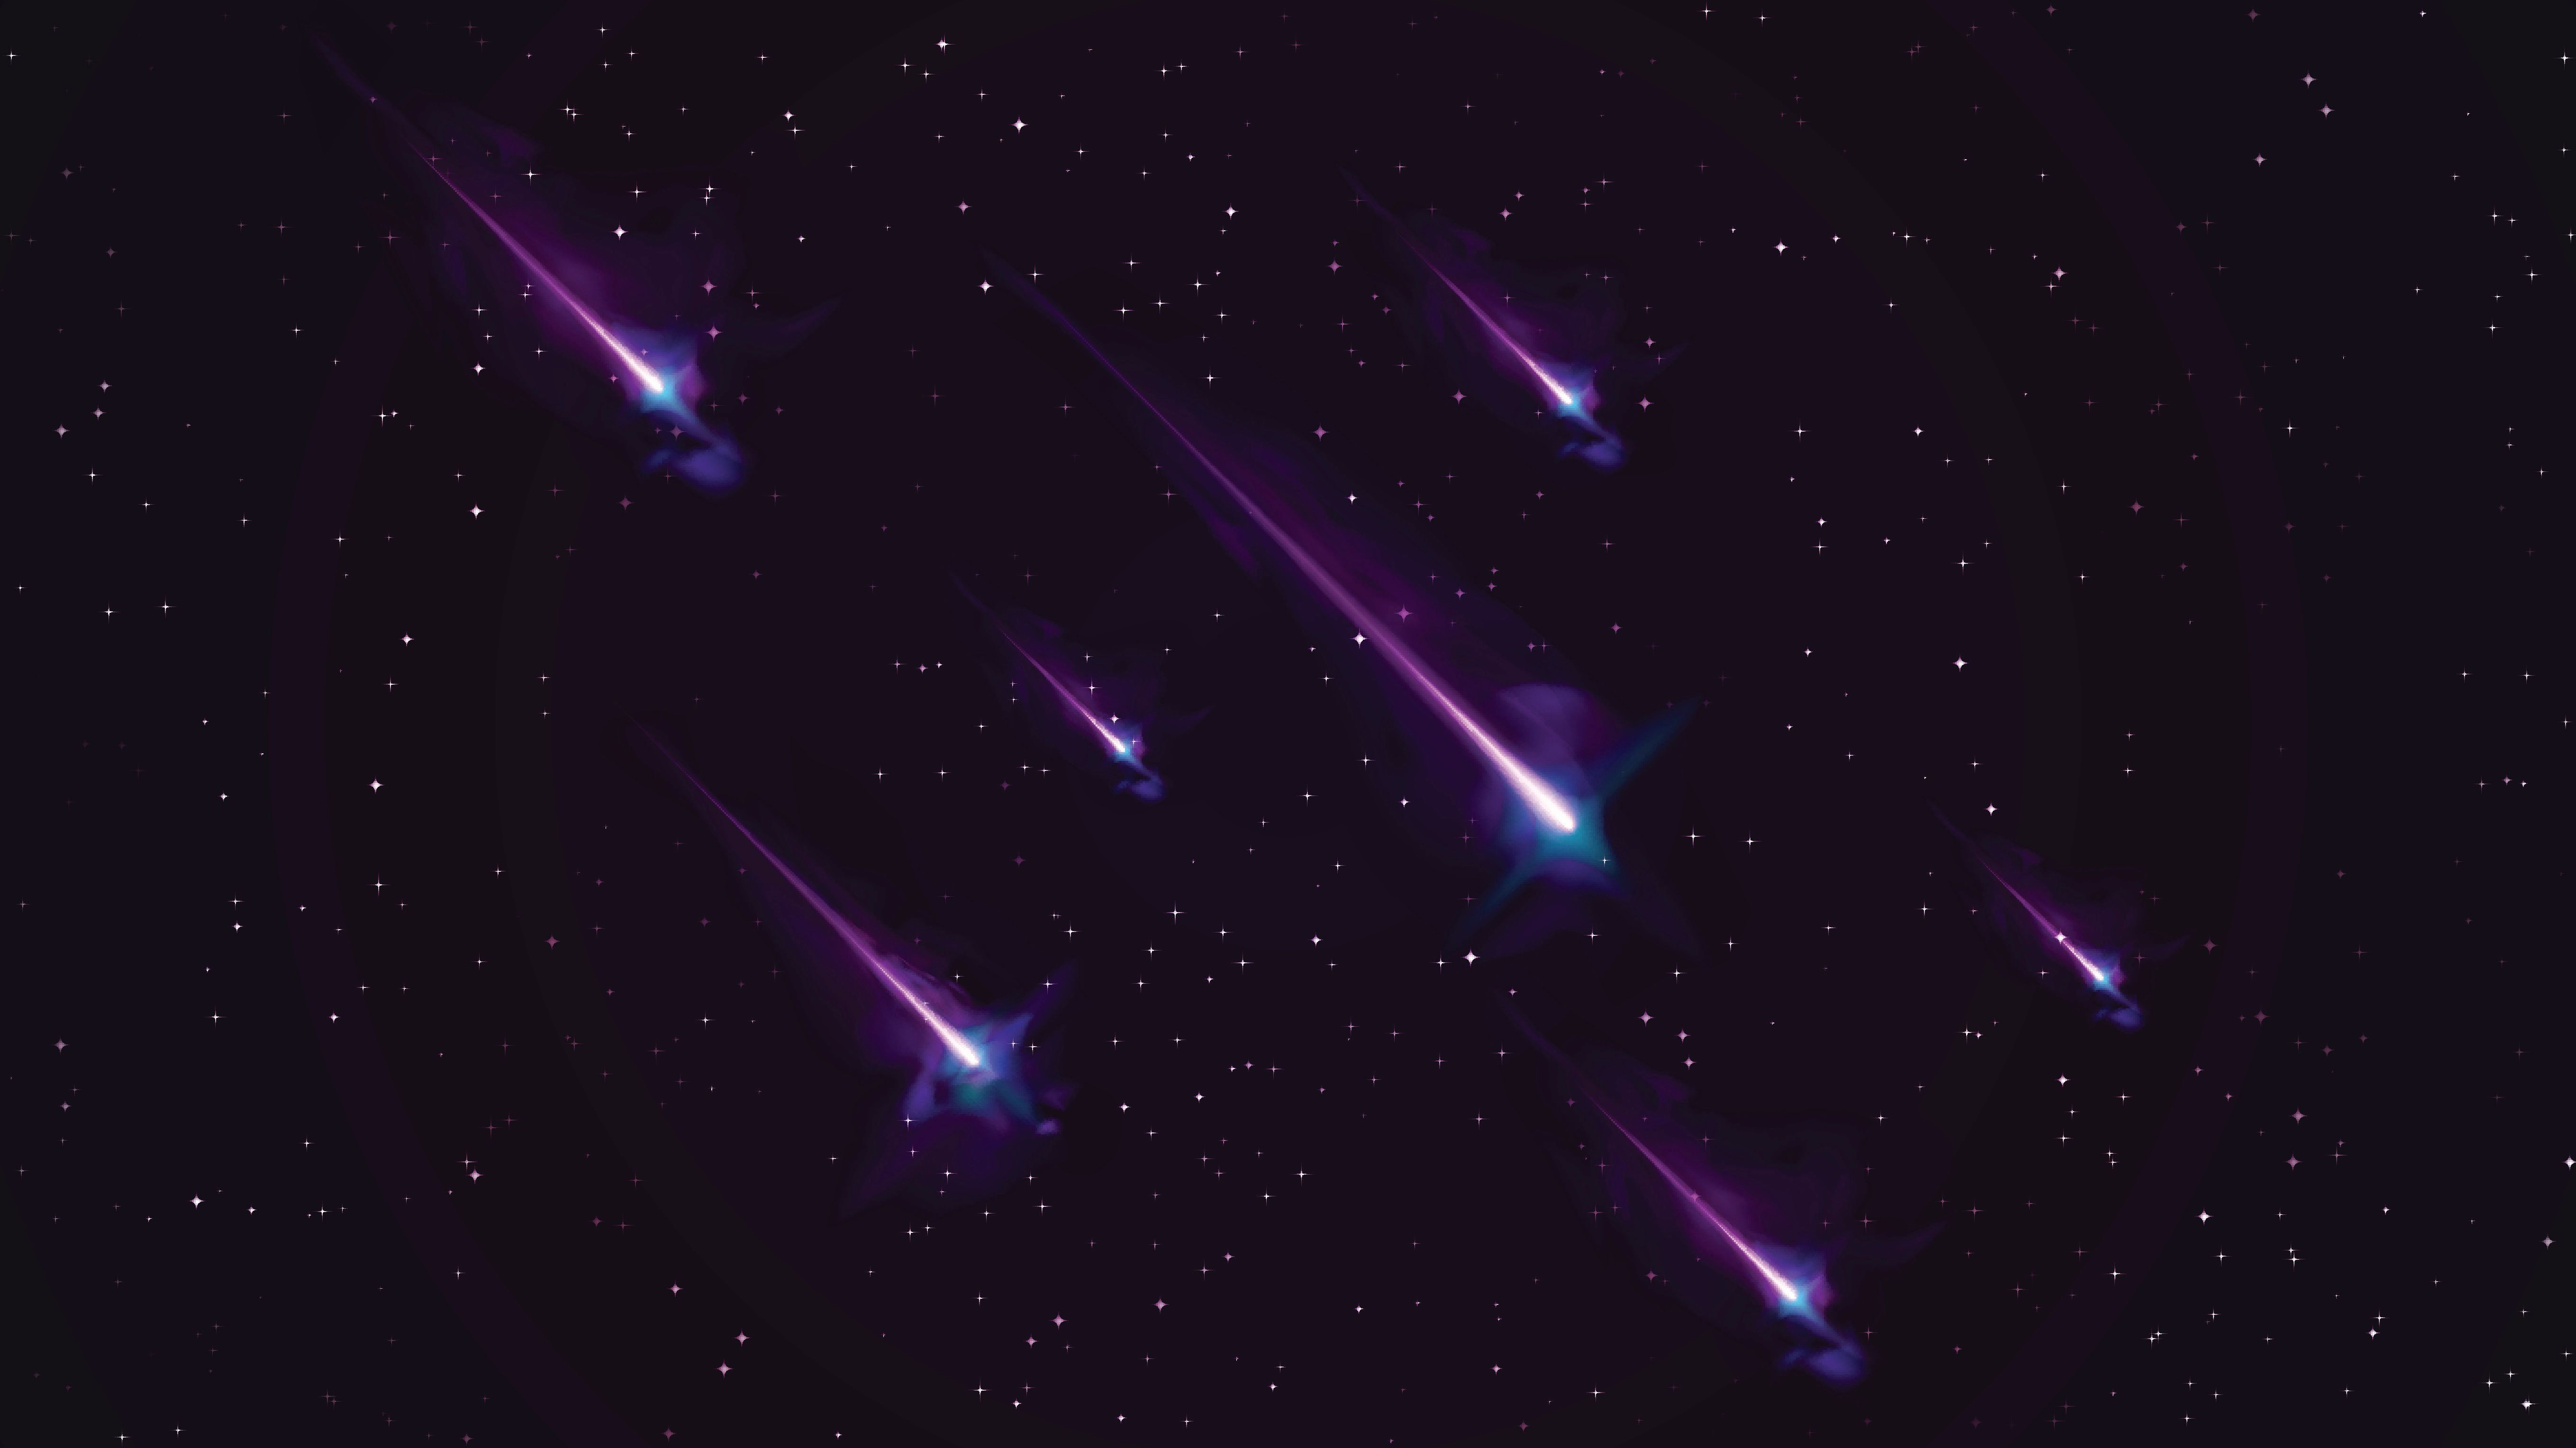 This stock vector illustration features space with shooting stars. It is a combination of small far stars with cross light refractions incorporating bright colors, including vibrant blues and purples. The use of reflection and tone portrays a sense of depth. The image has a dark colorful tone. Image includes a standard license along with the option of upgradeable extended license.